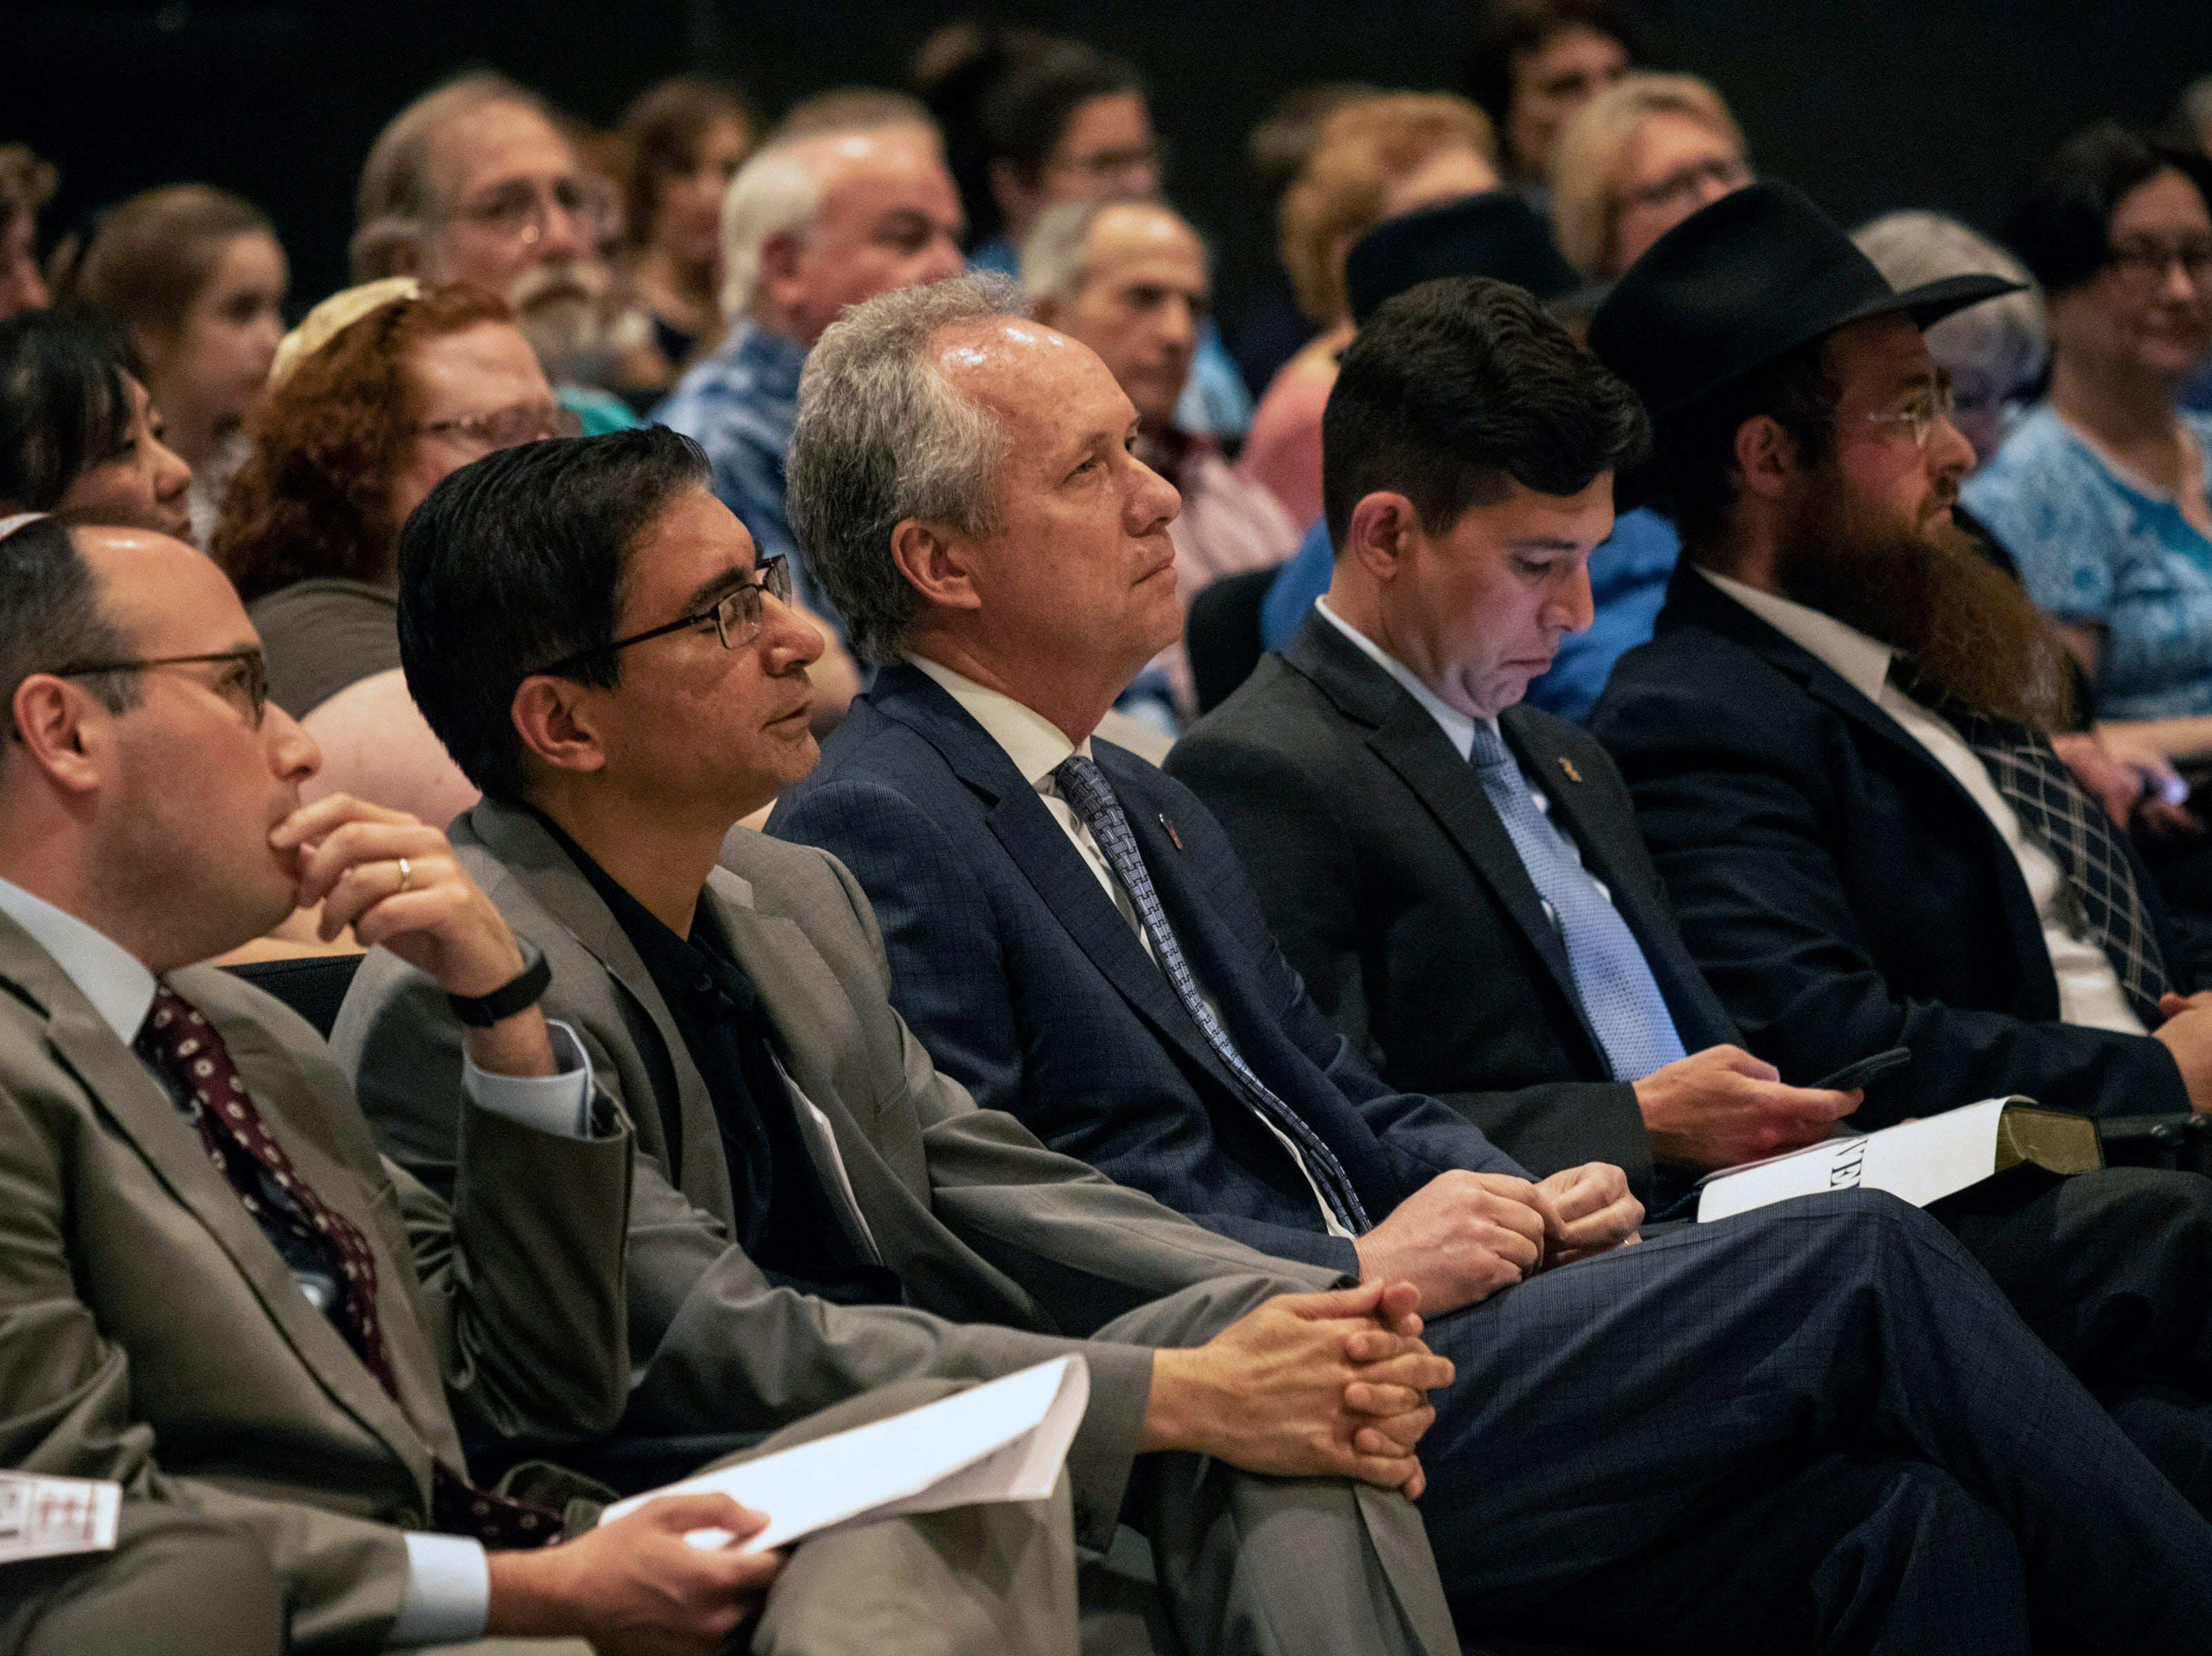 Louisville Mayor Greg Fischer sits with local faith leaders during a Unite For Light prayer service at the Jewish Community Center on Tuesday. April 30, 2019